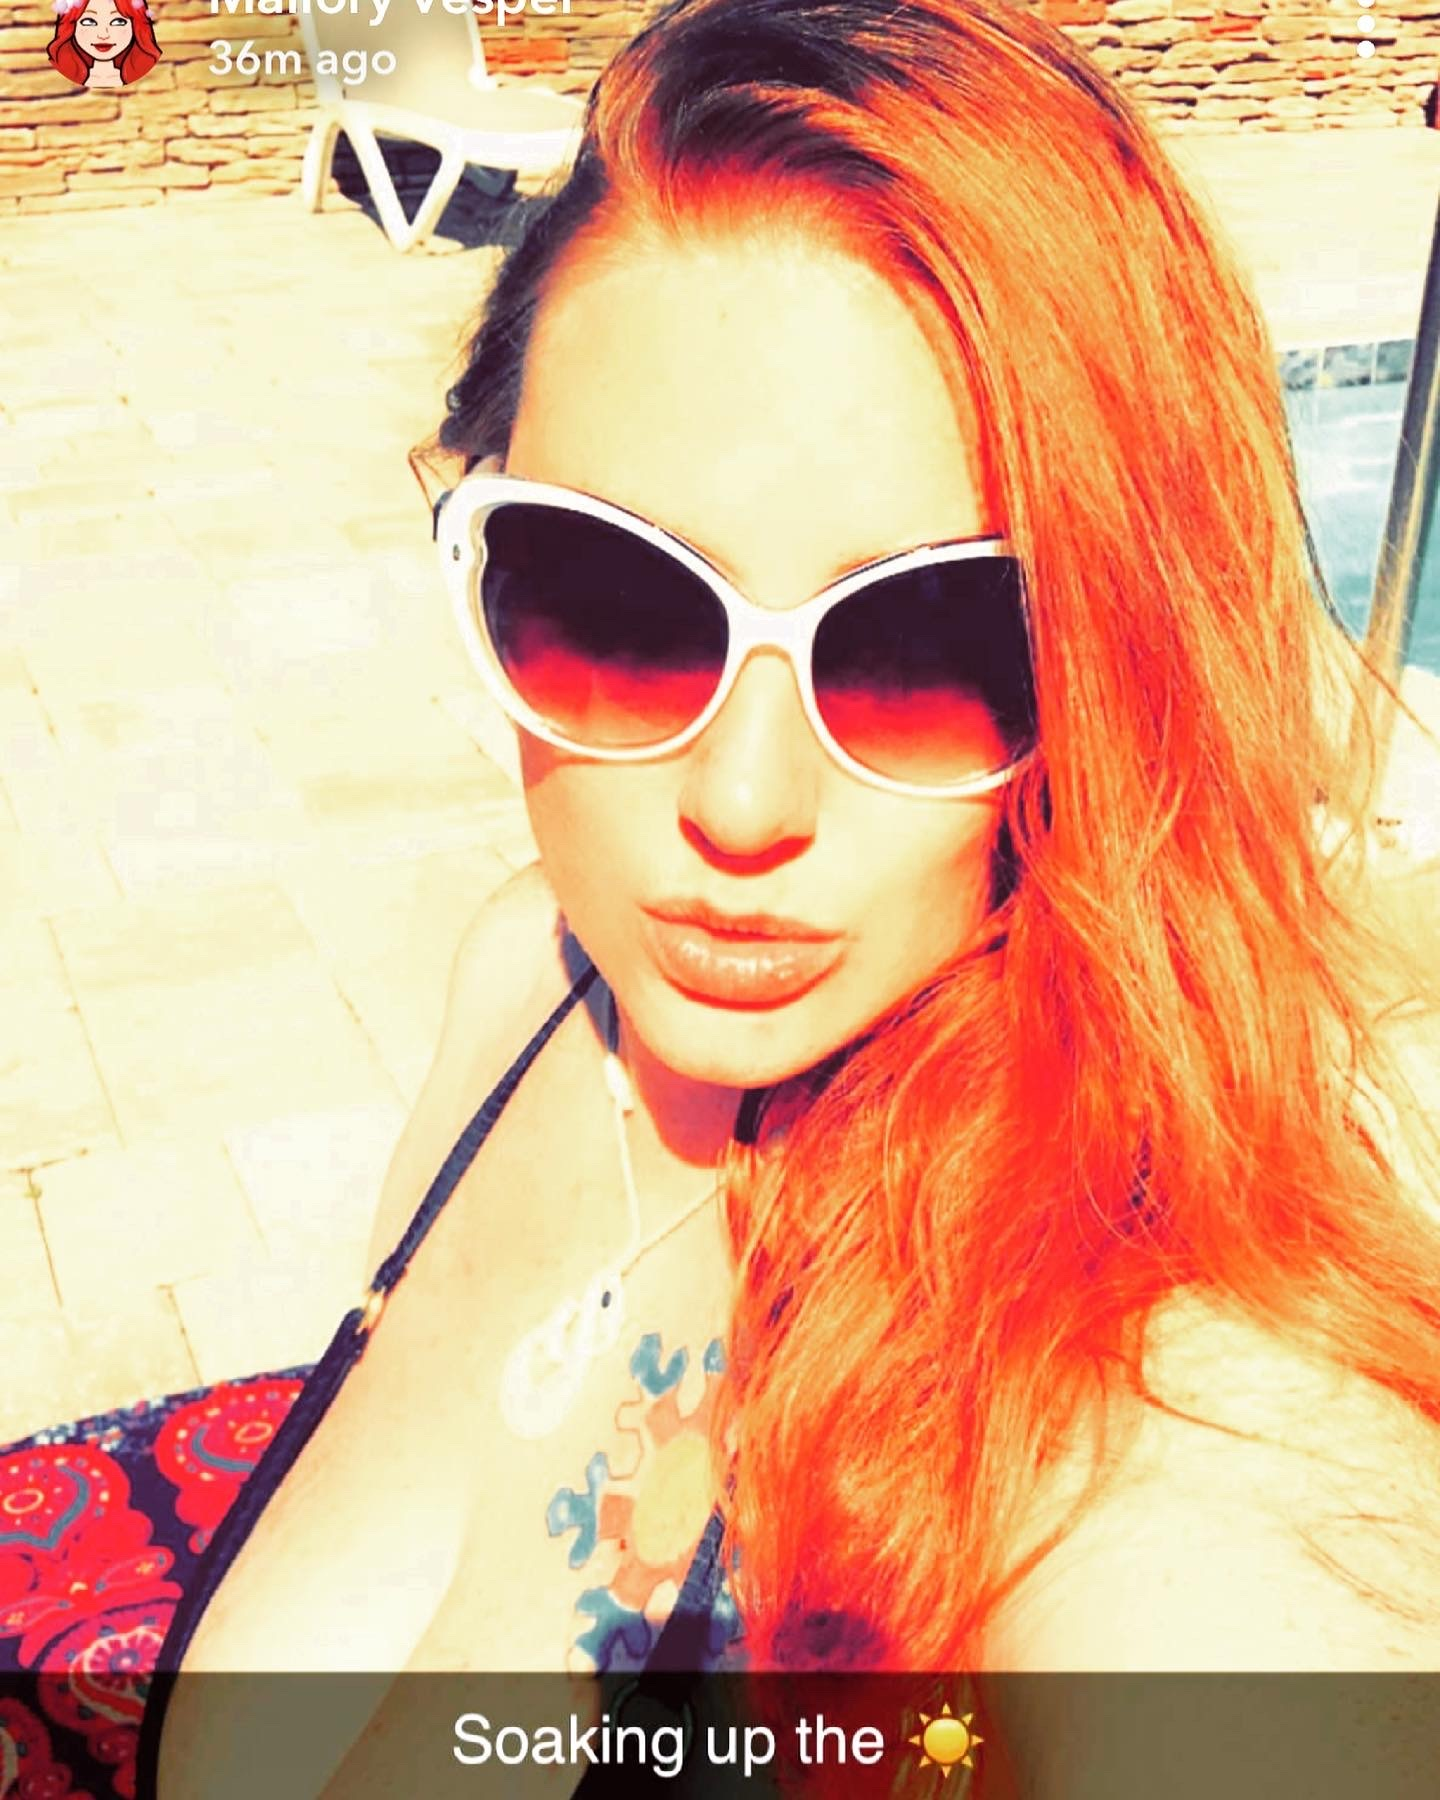 32-year-old, Single From: Navarre, Fl, United States